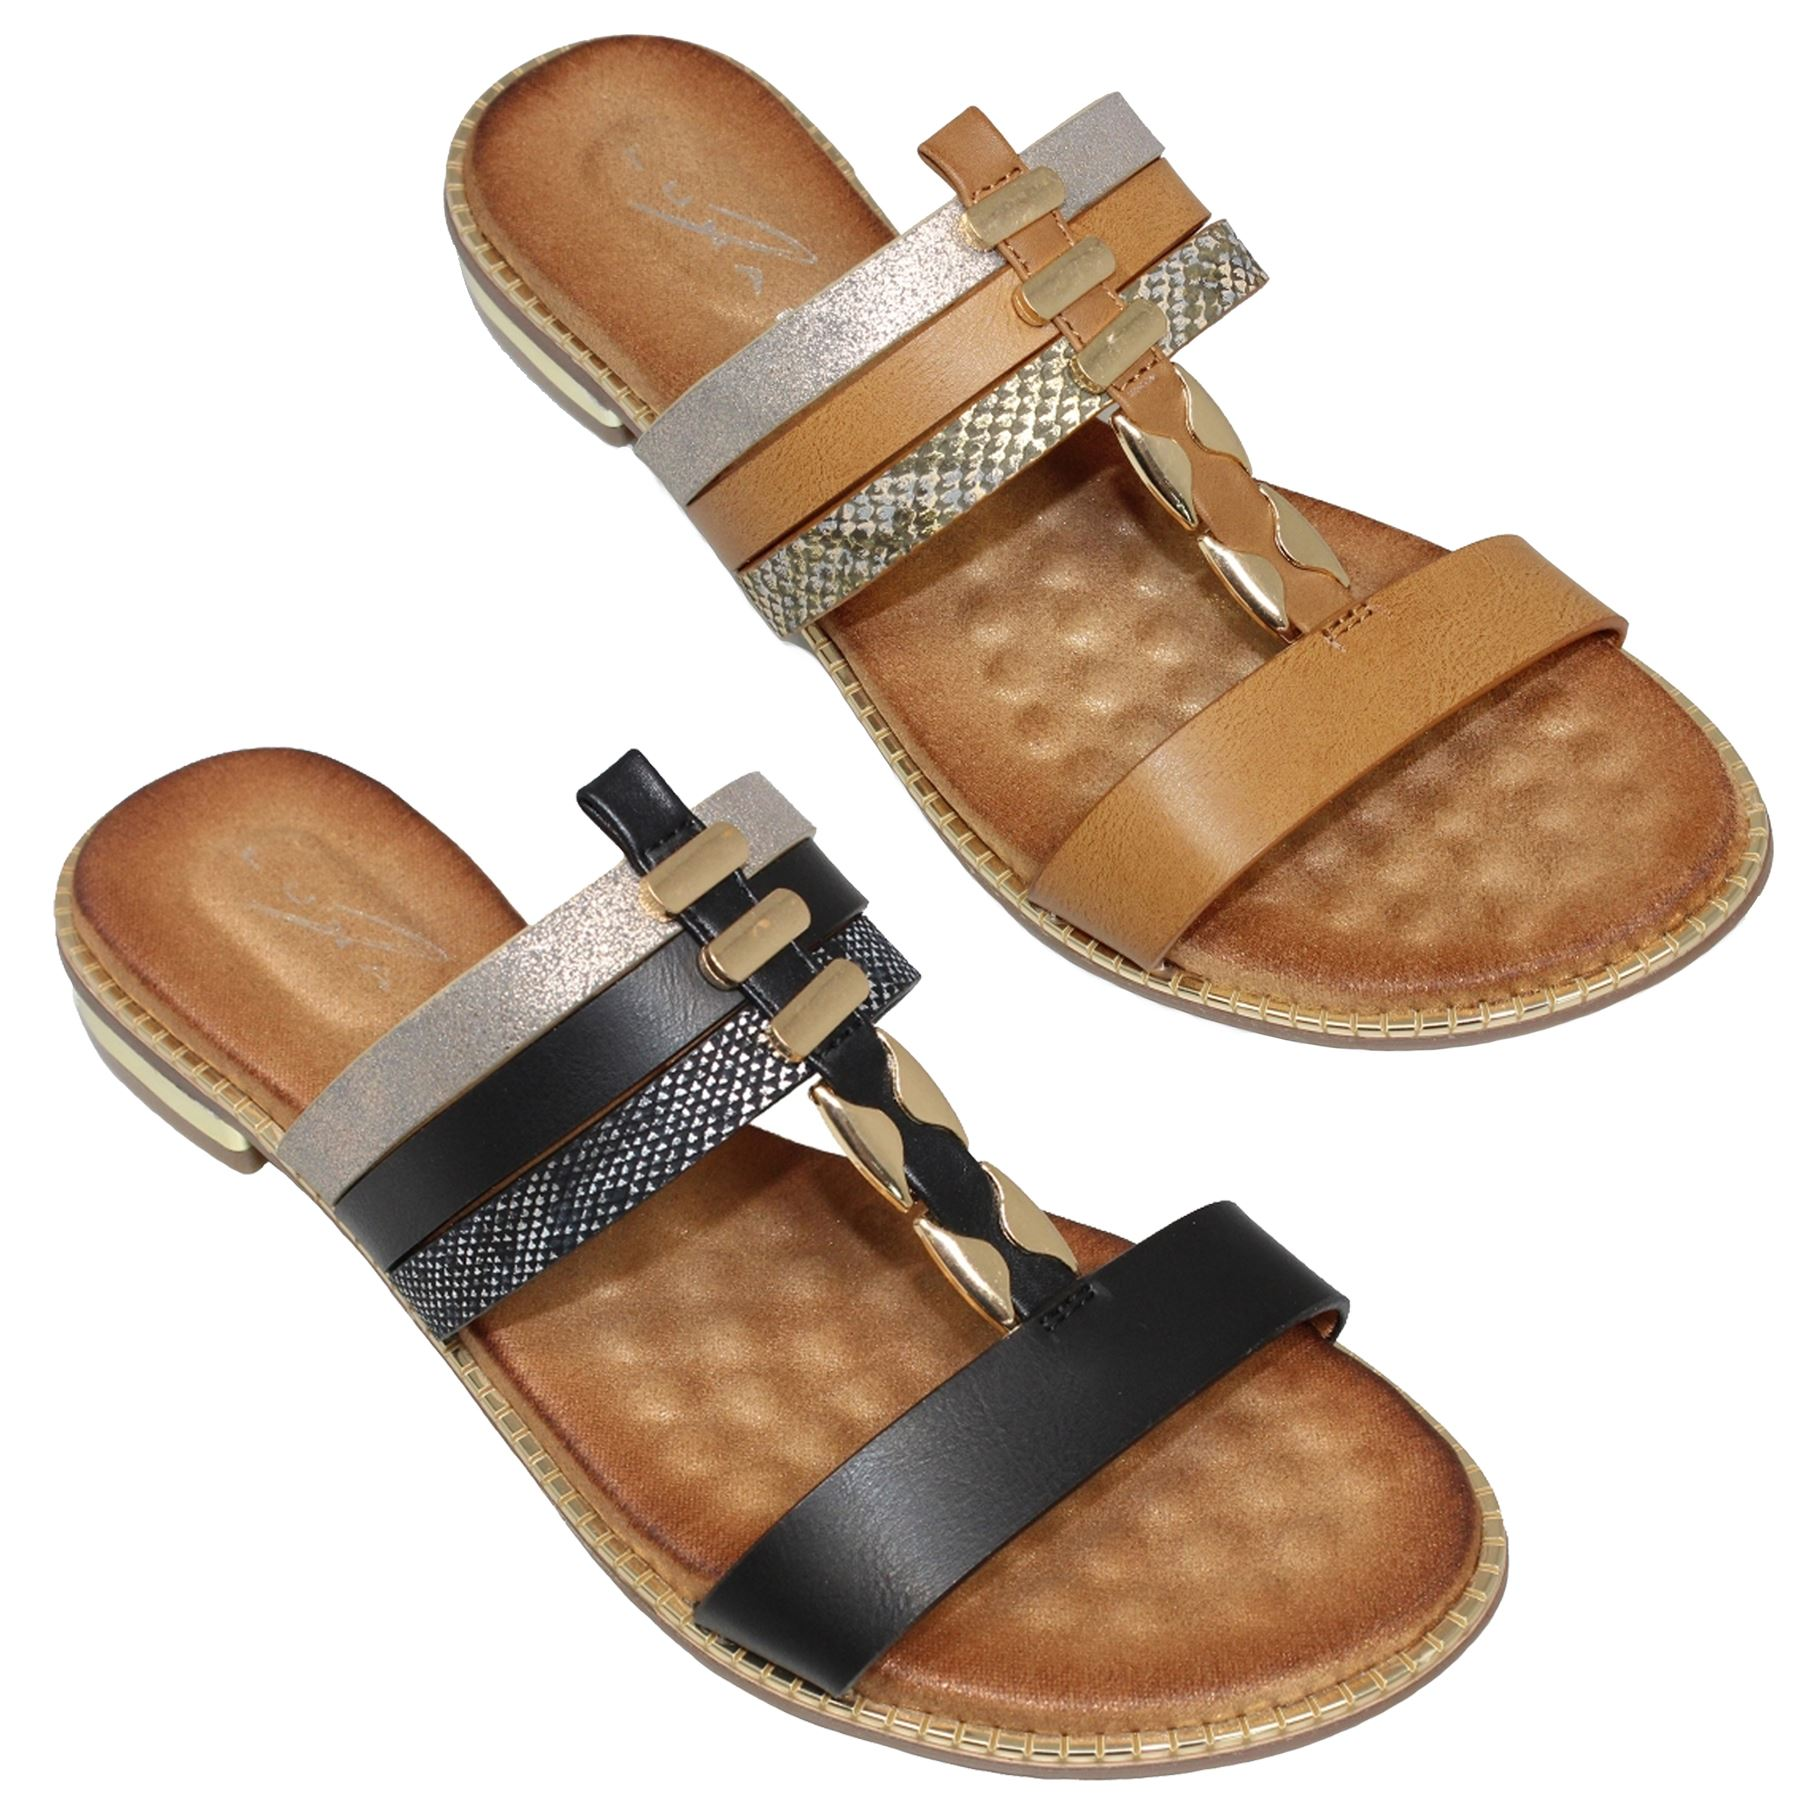 Jlh905 Bellini Flat Strap Cushion Insole Synthetic Leather Mule Tendencies Sandals Footbed 2 Brown 40 Style